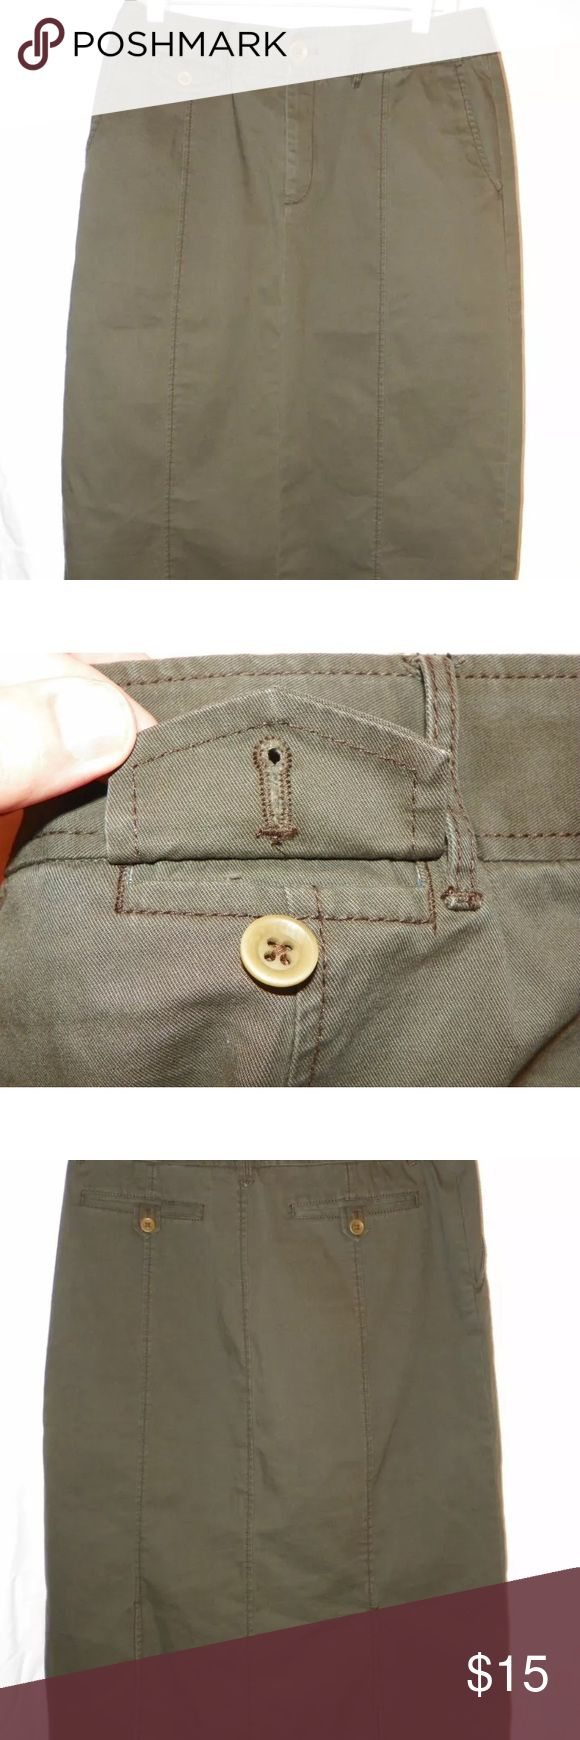 """Eddie Bauer Long Khaki Skirt Olive green 31"""" long skirt. Comes from a smoke free home. Eddie Bauer Skirts A-Line or Full"""